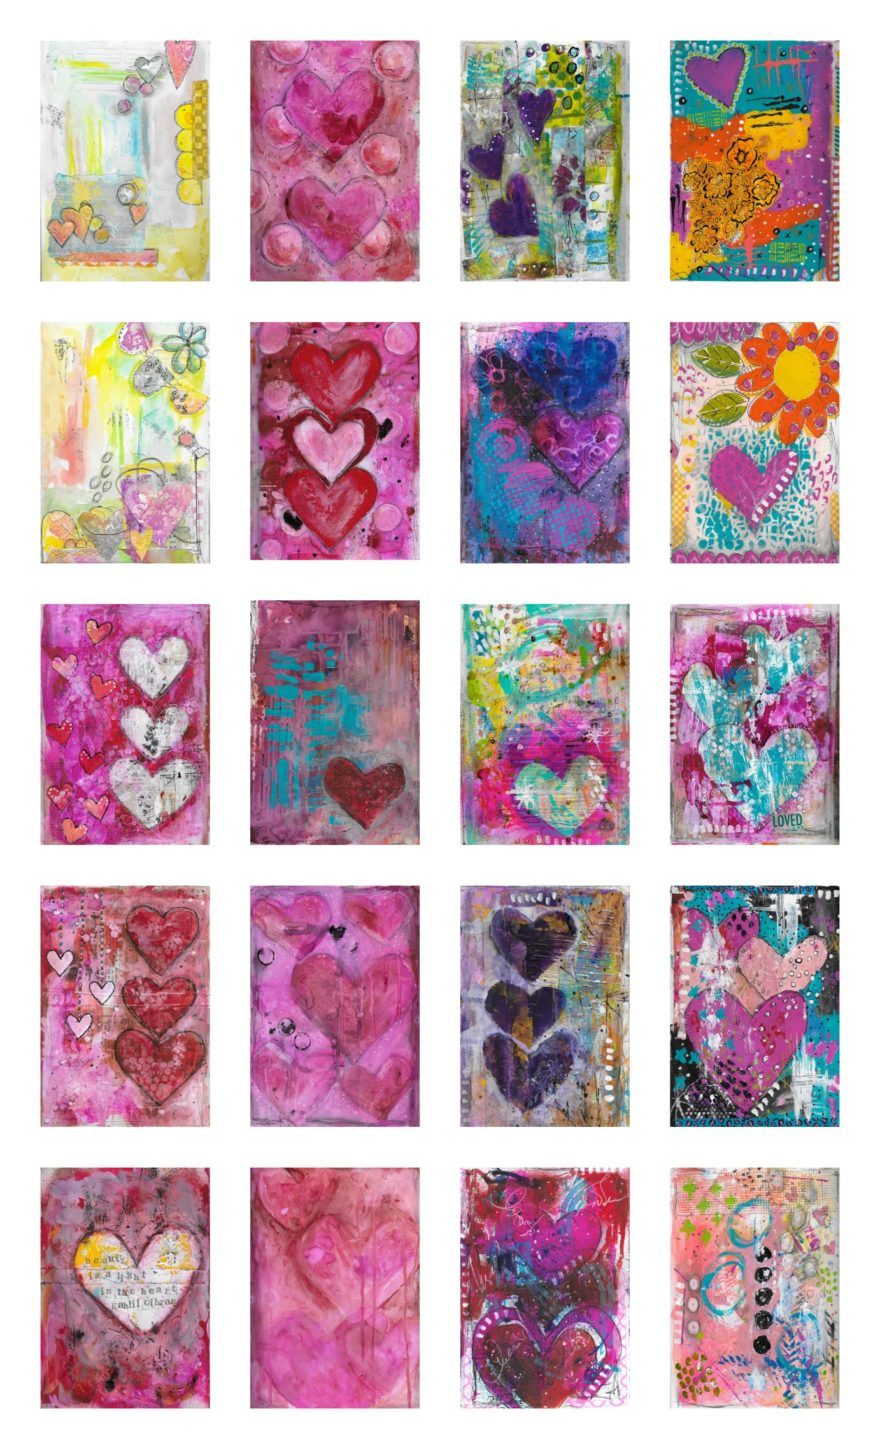 Mary Janes Love Collection Print by Jane Martin | Collage made from Love Collection Photos